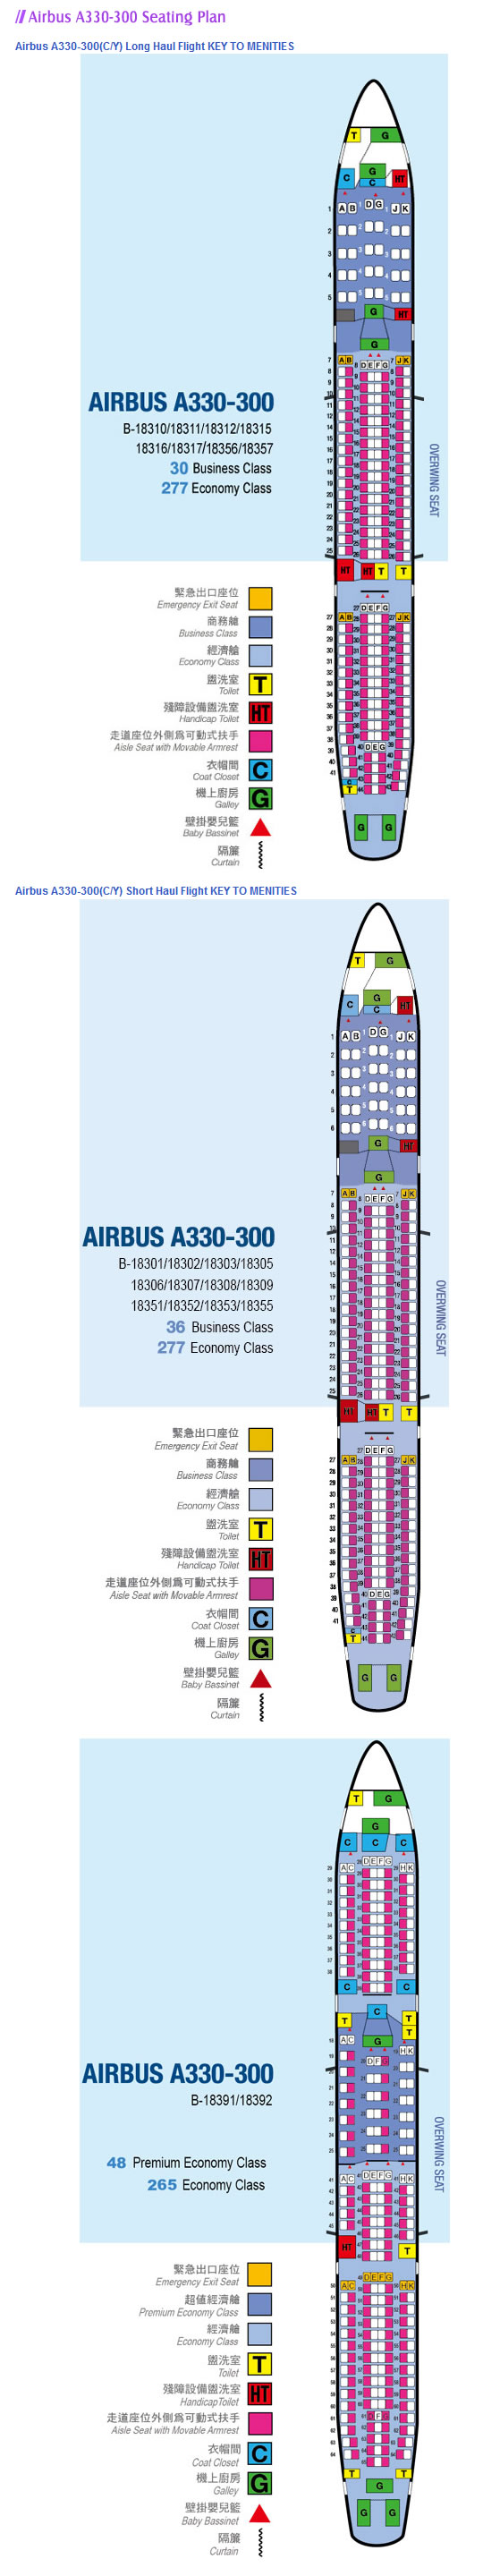 CHINA AIRLINES AIRBUS A330 AIRCRAFT SEATING CHART